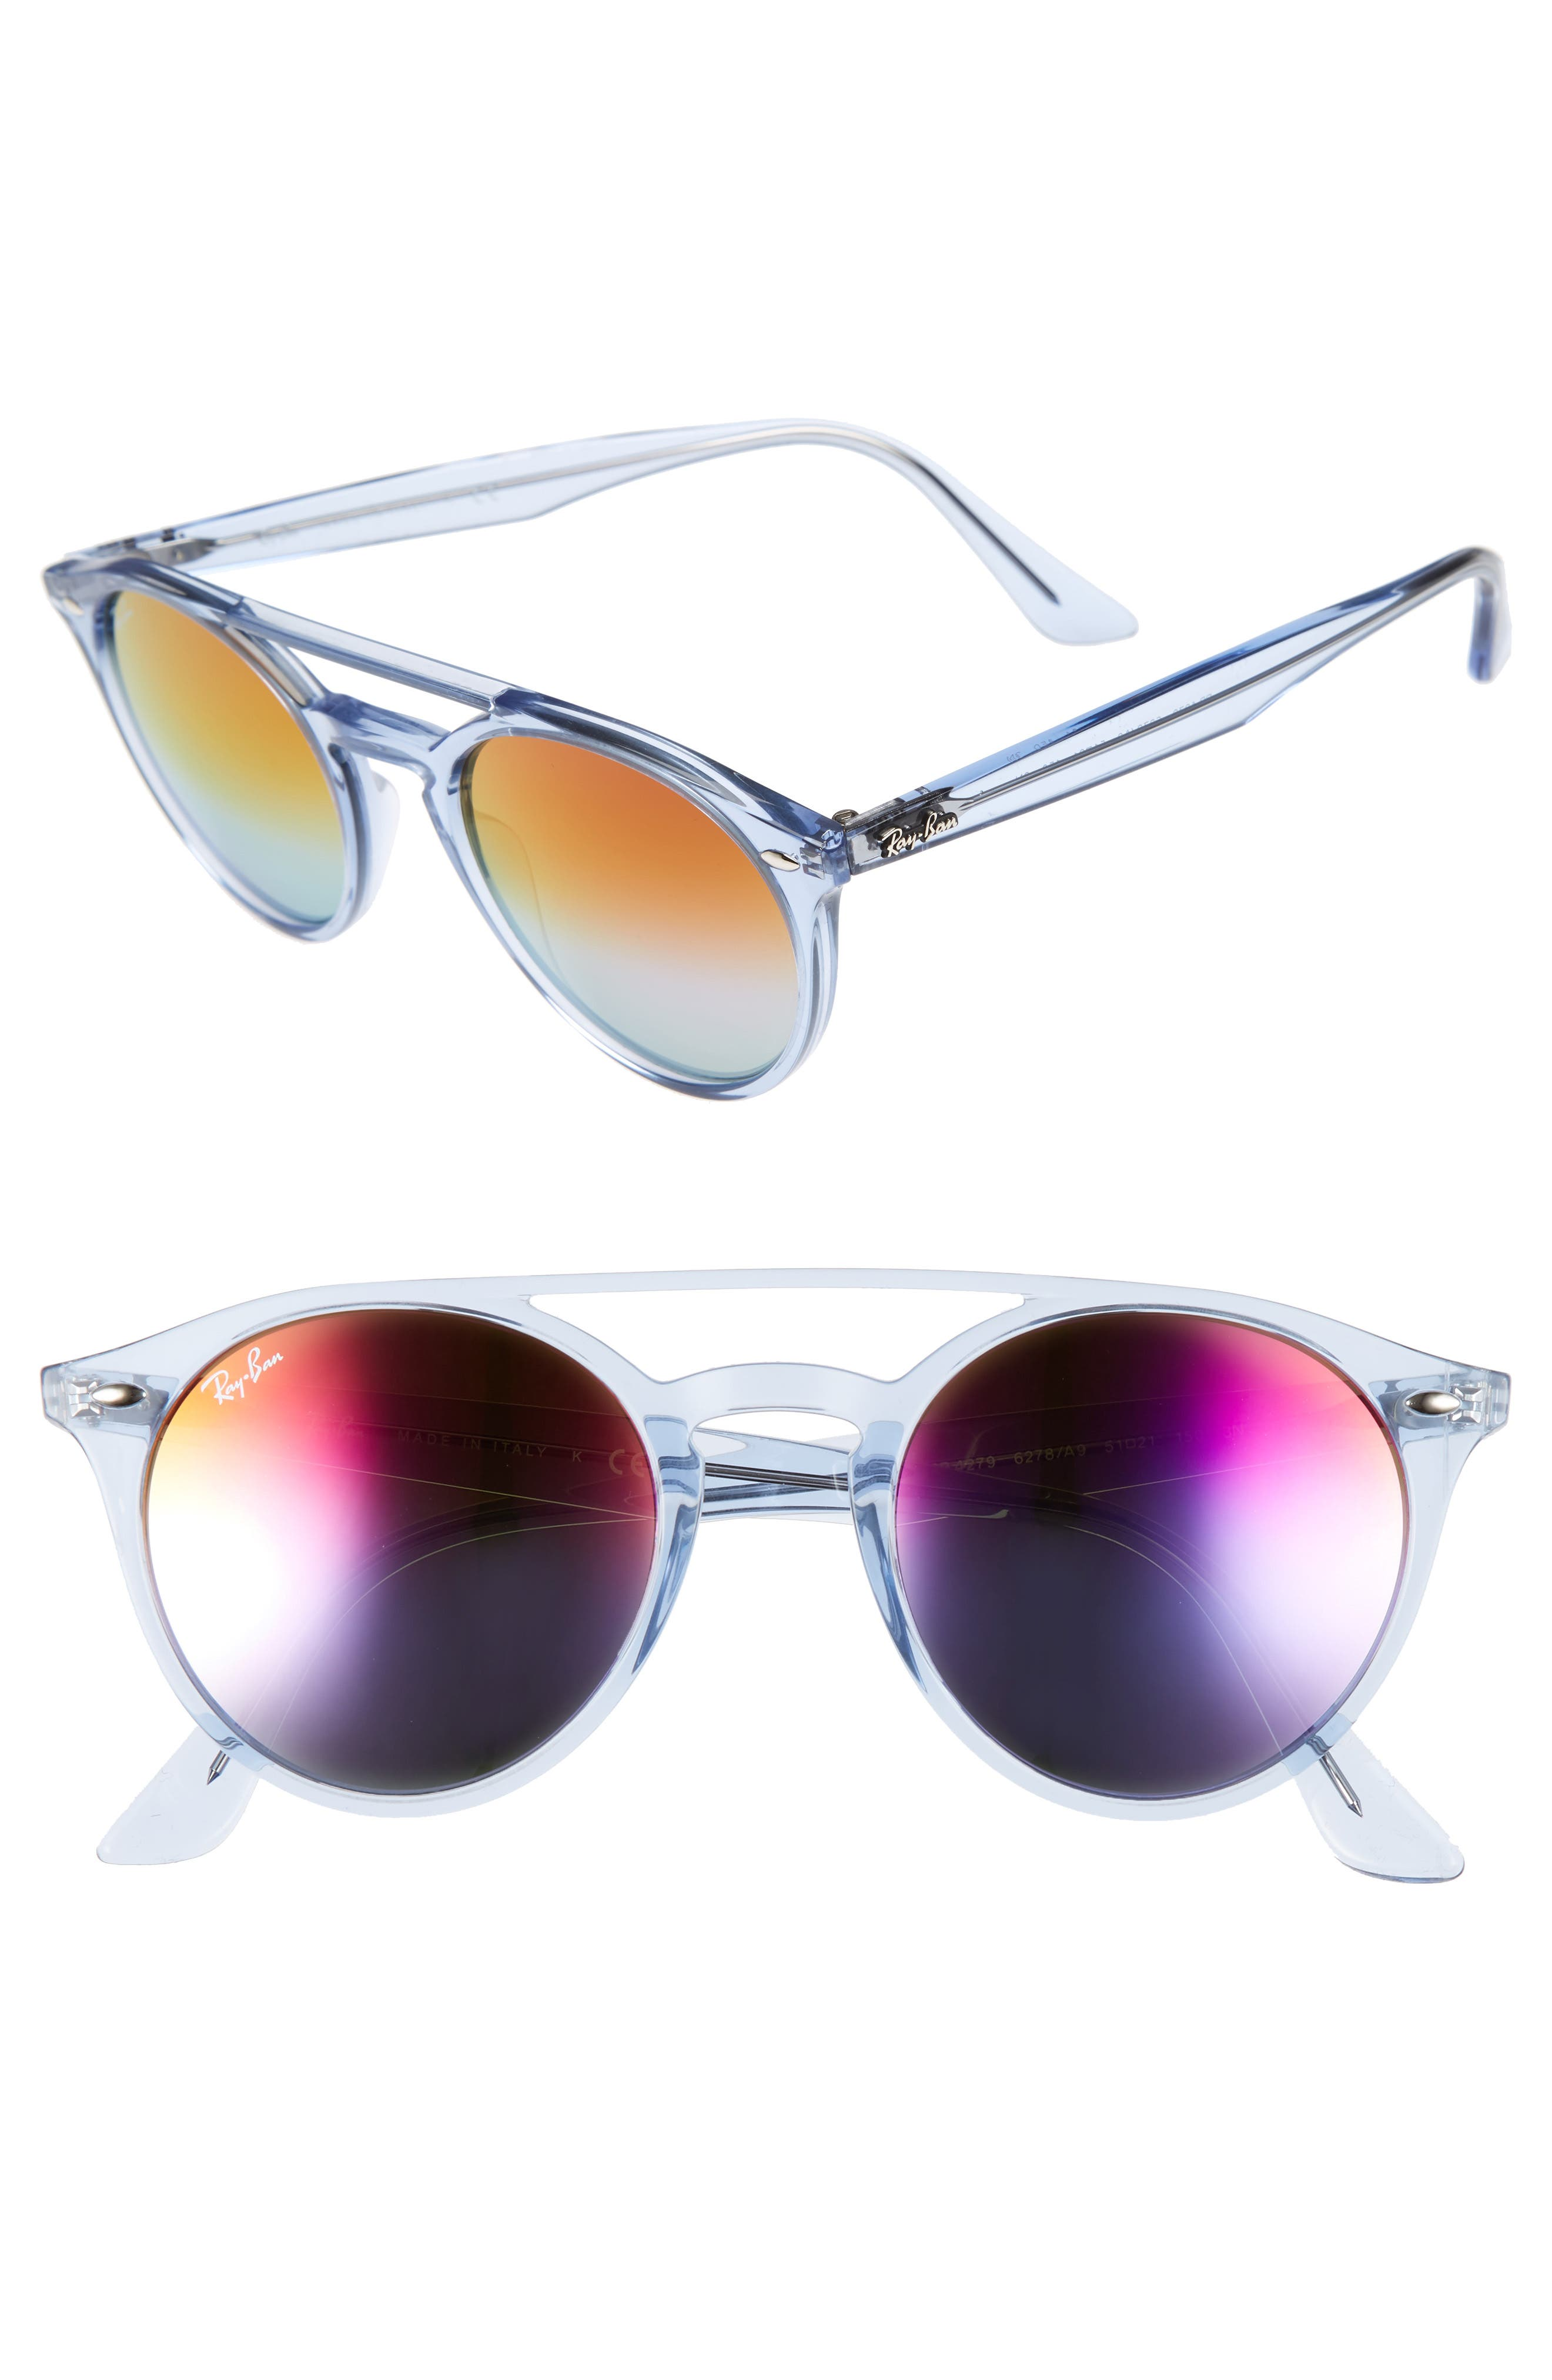 51mm Mirrored Rainbow Sunglasses,                             Main thumbnail 1, color,                             428